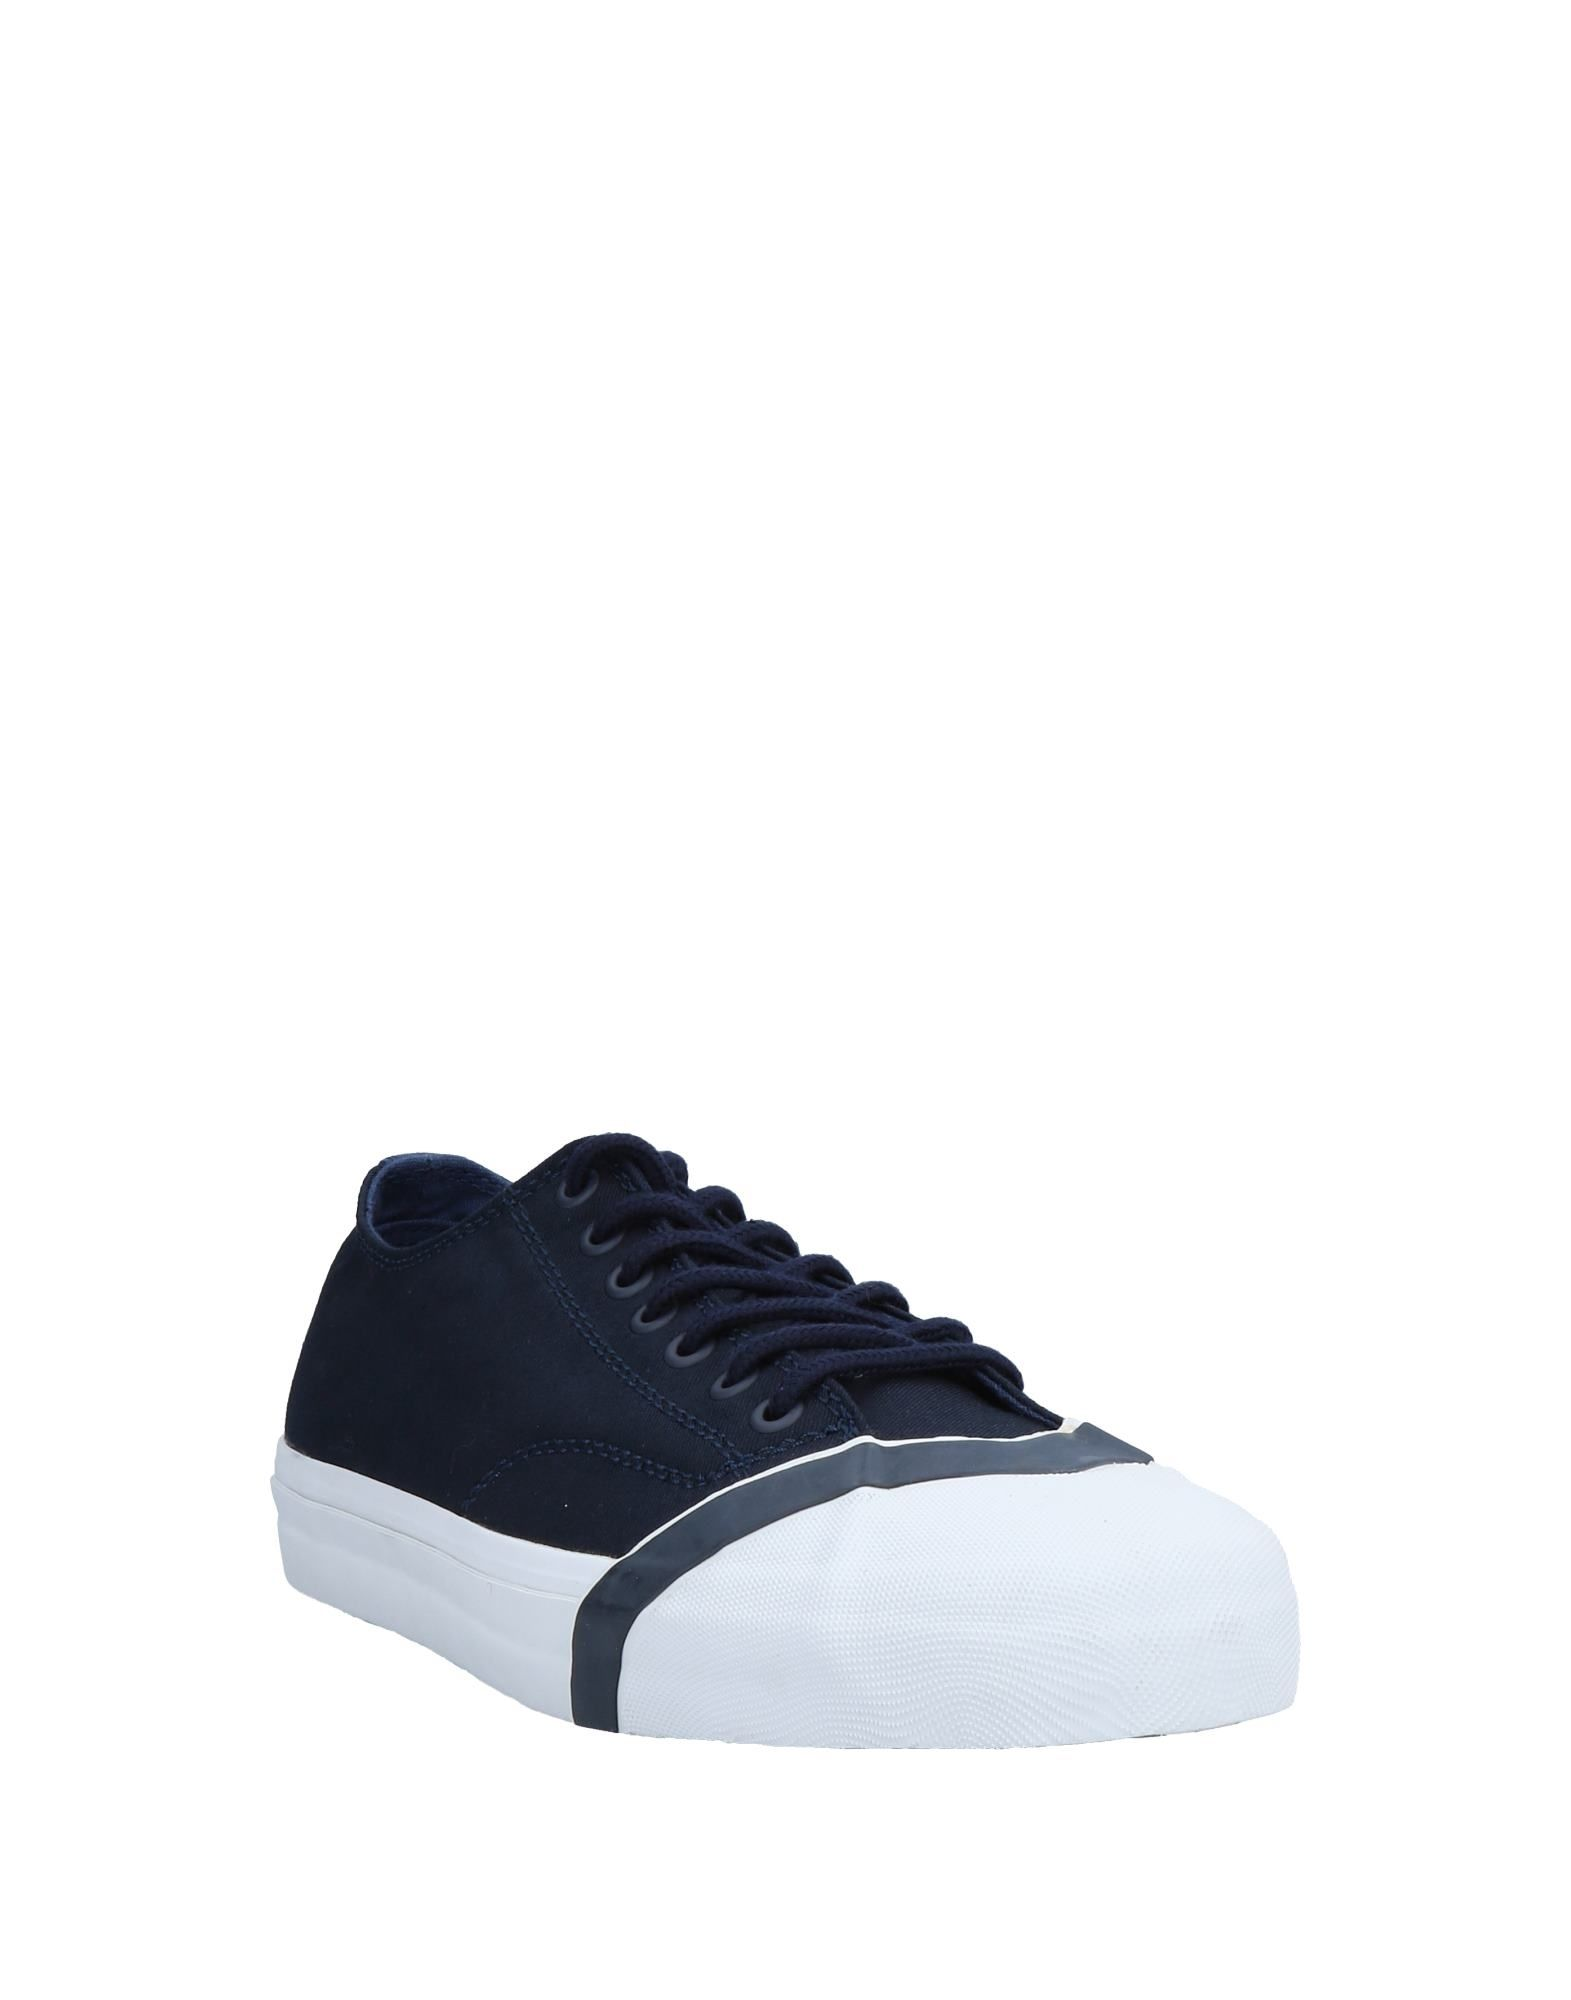 Losers Sneakers Sneakers Sneakers - Men Losers Sneakers online on  United Kingdom - 11580522QX 8da8f8